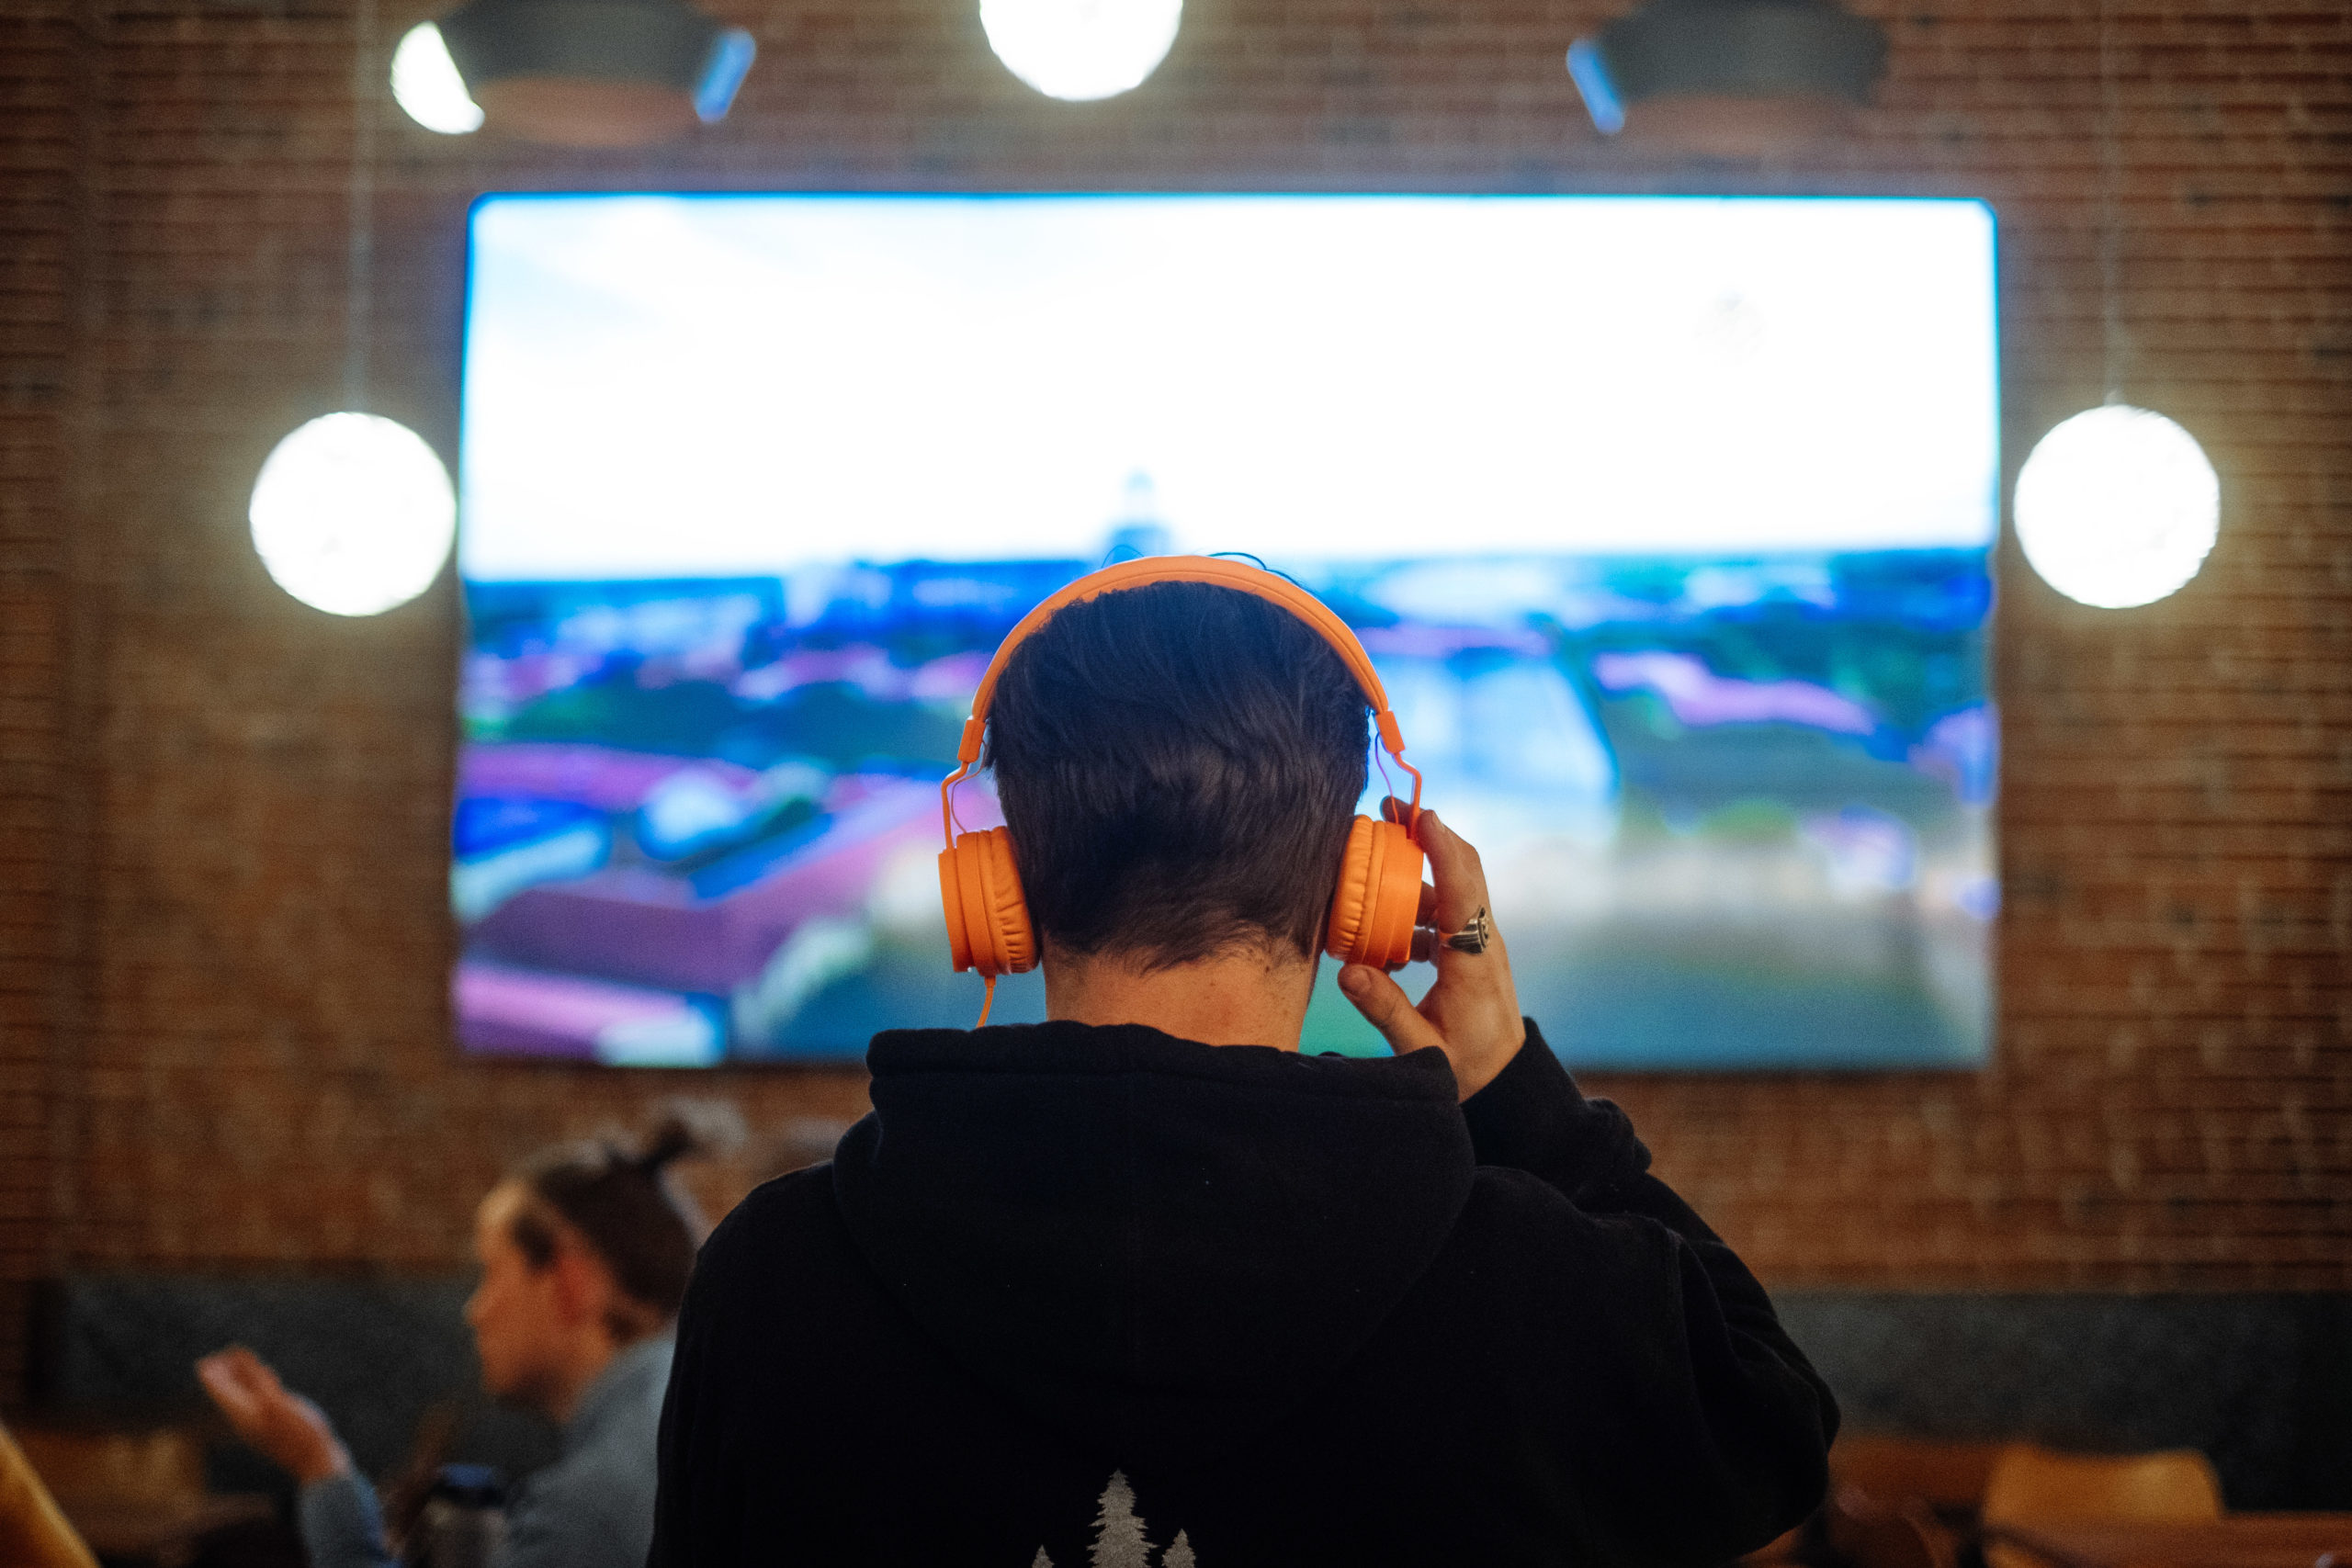 Man with Headphones Watching TV in Sports Bar